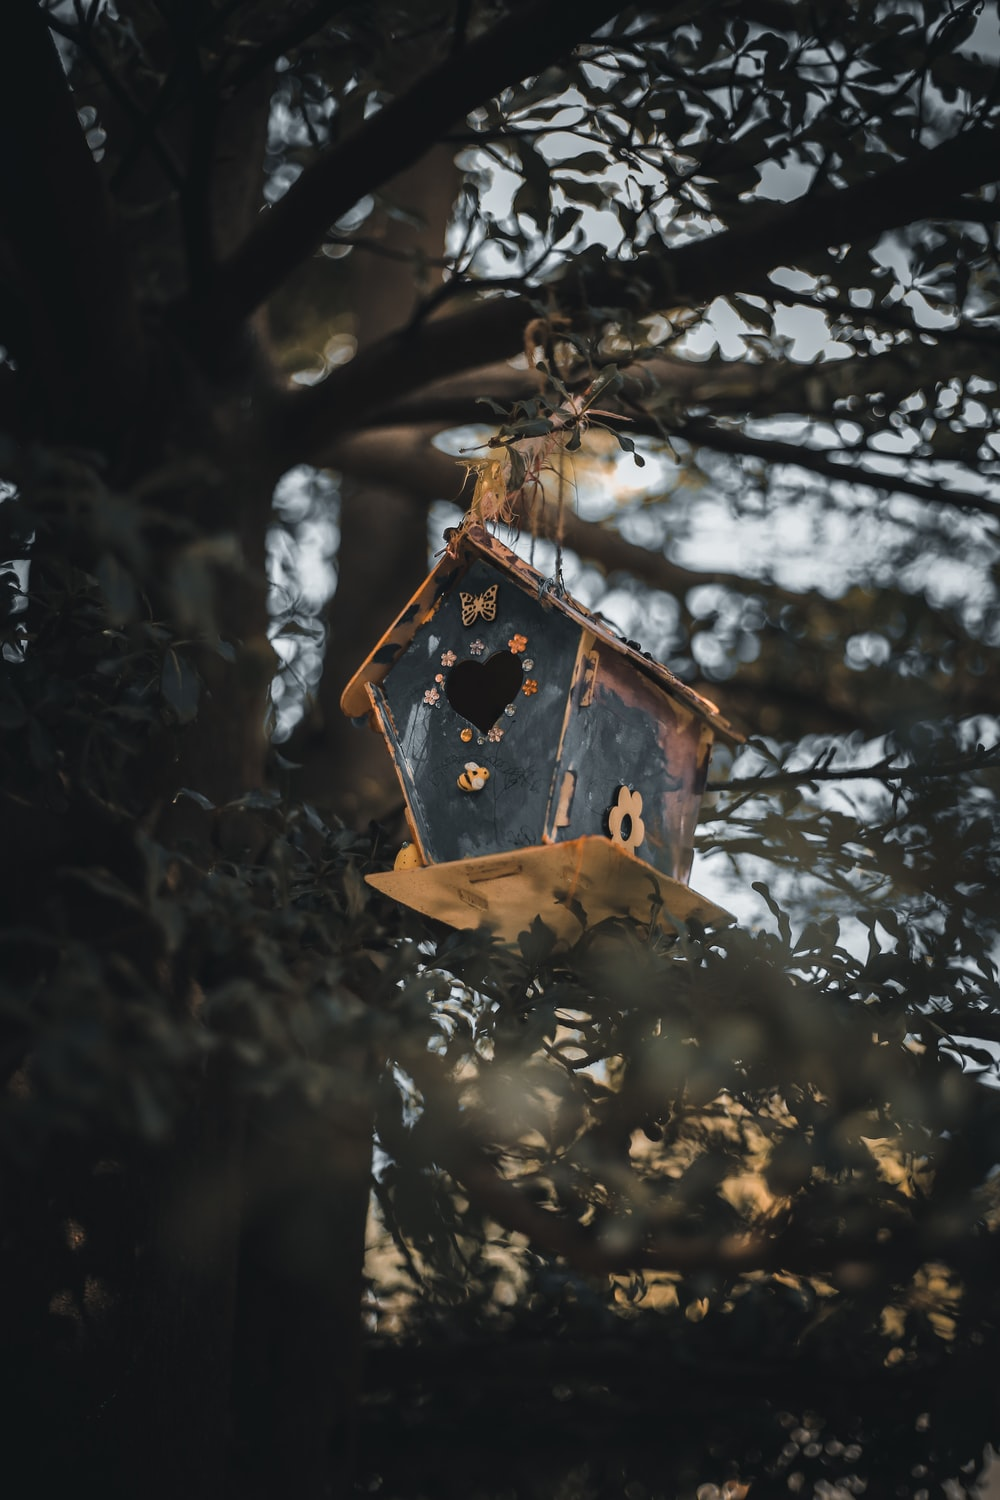 brown wooden bird house on tree branch during daytime